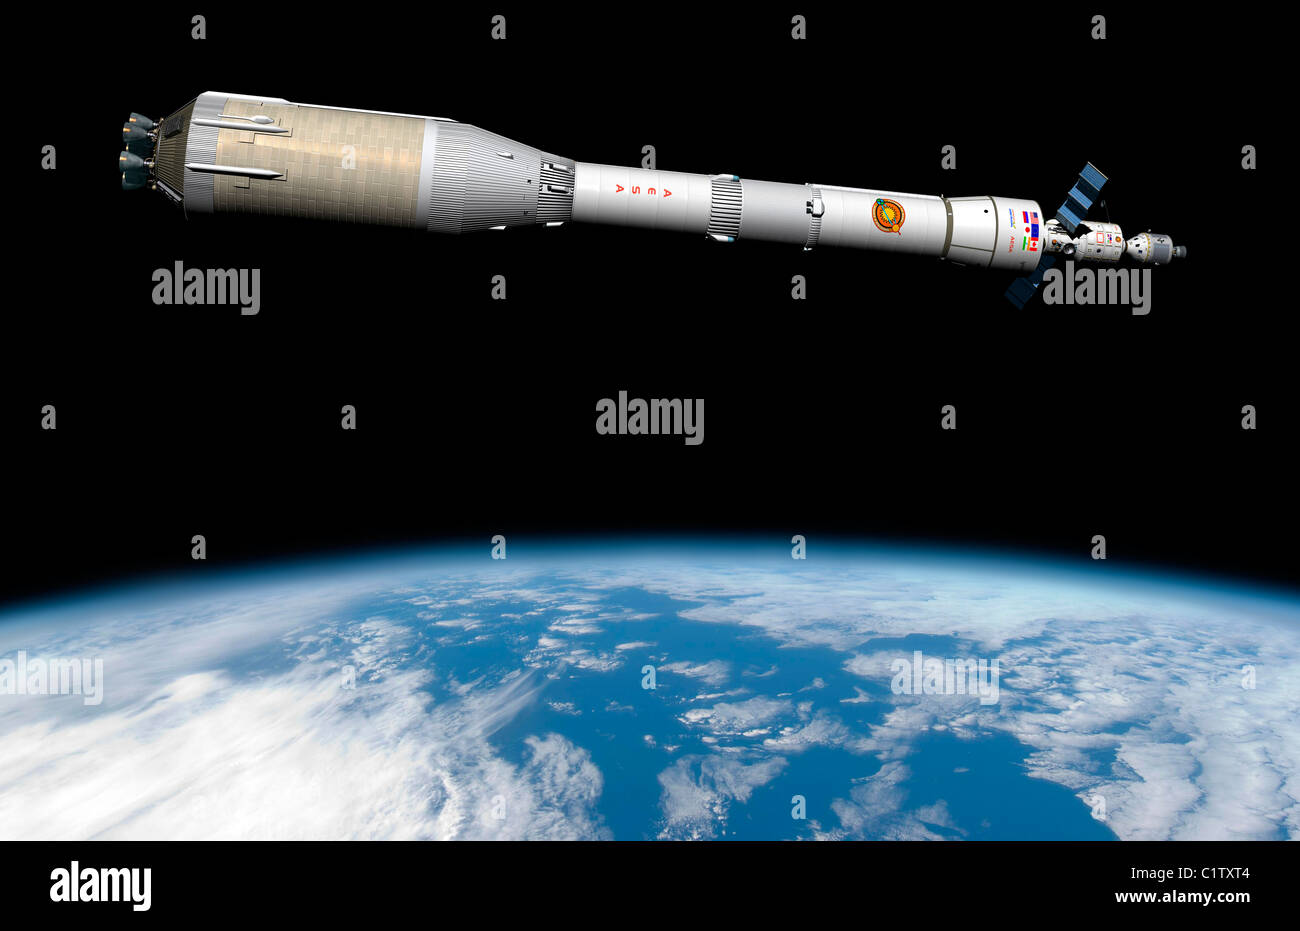 Phobos mission rocket system ready for departure. - Stock Image